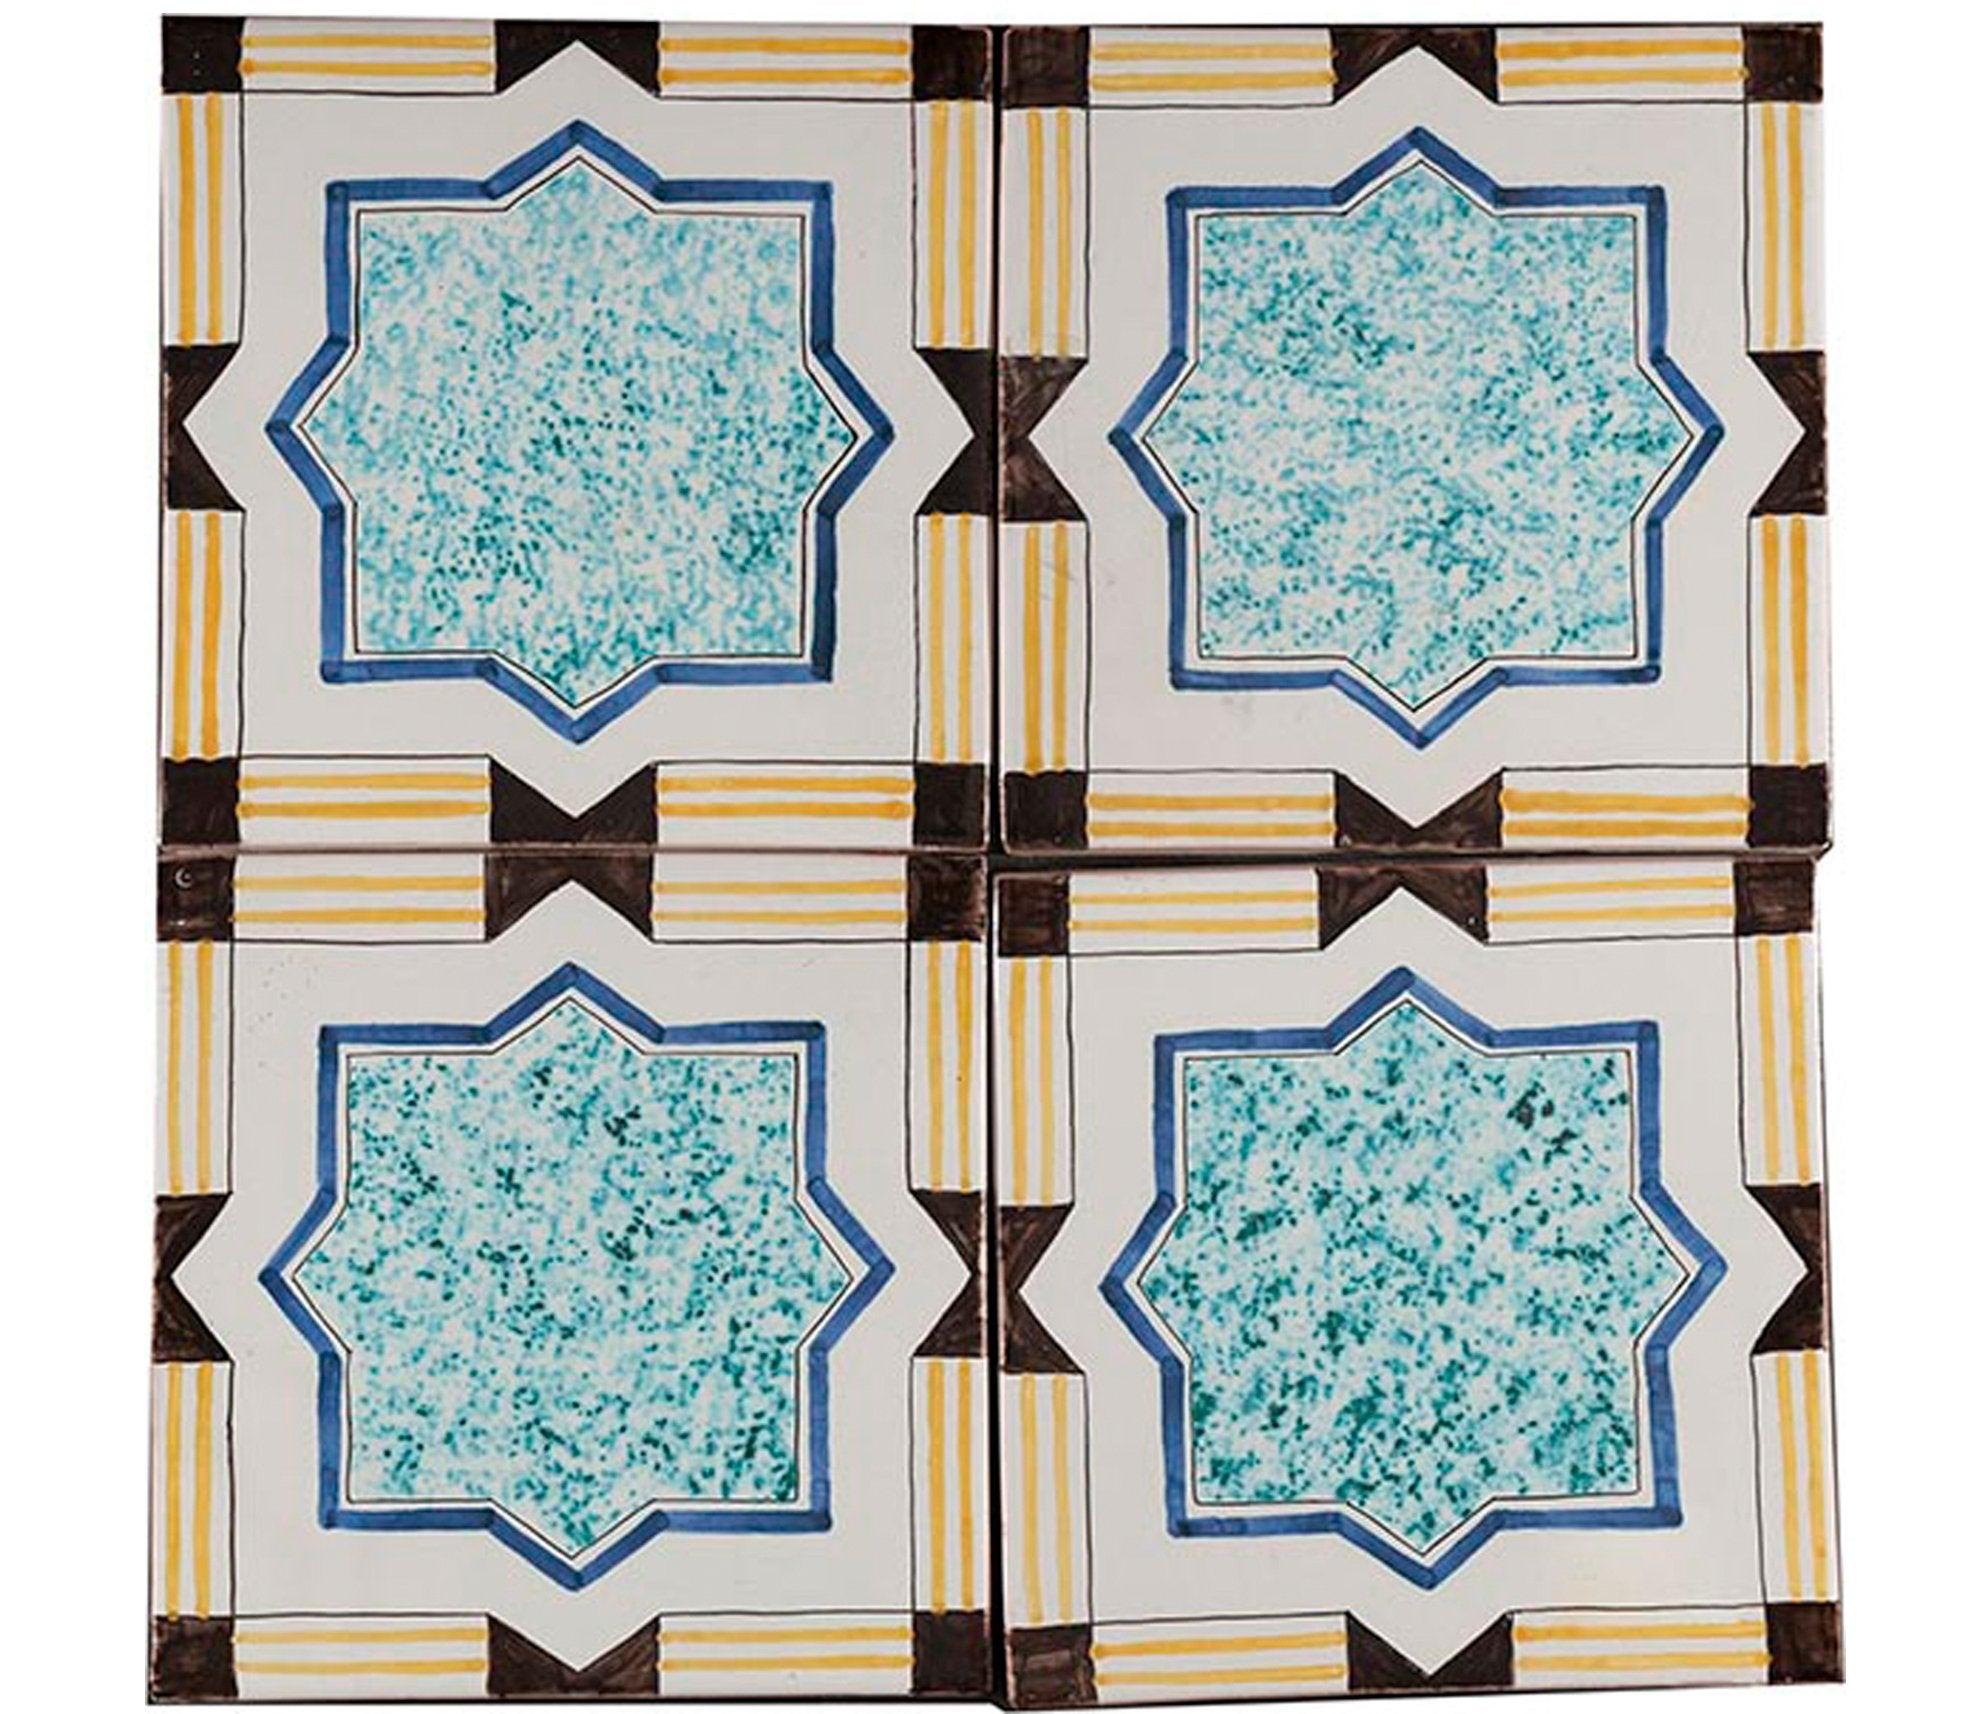 Series S Handpainted Tiles Product Image 4